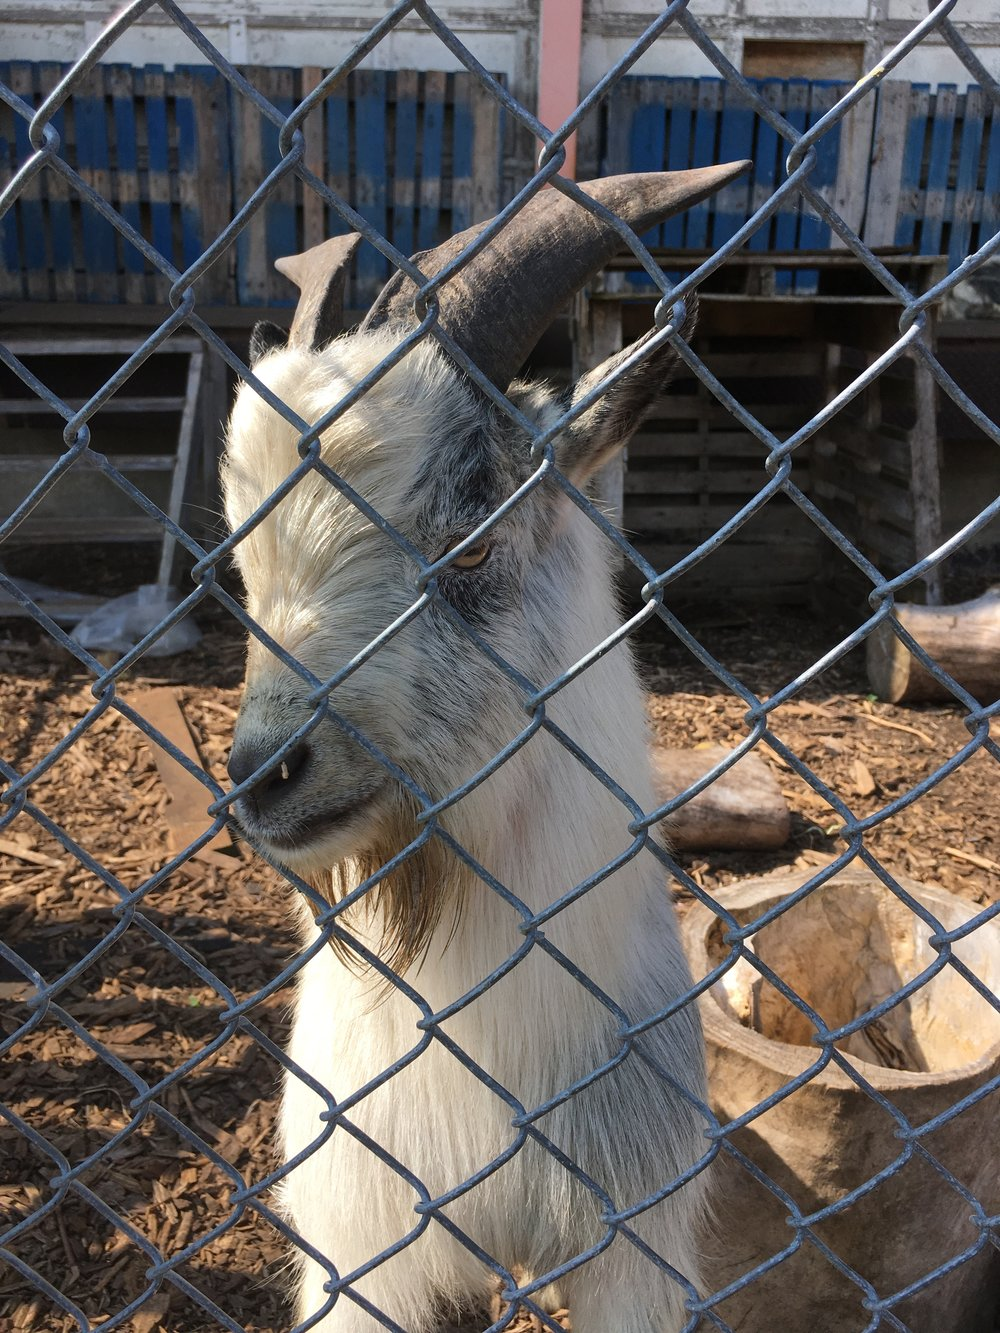 Taco, the urban pygmy goat